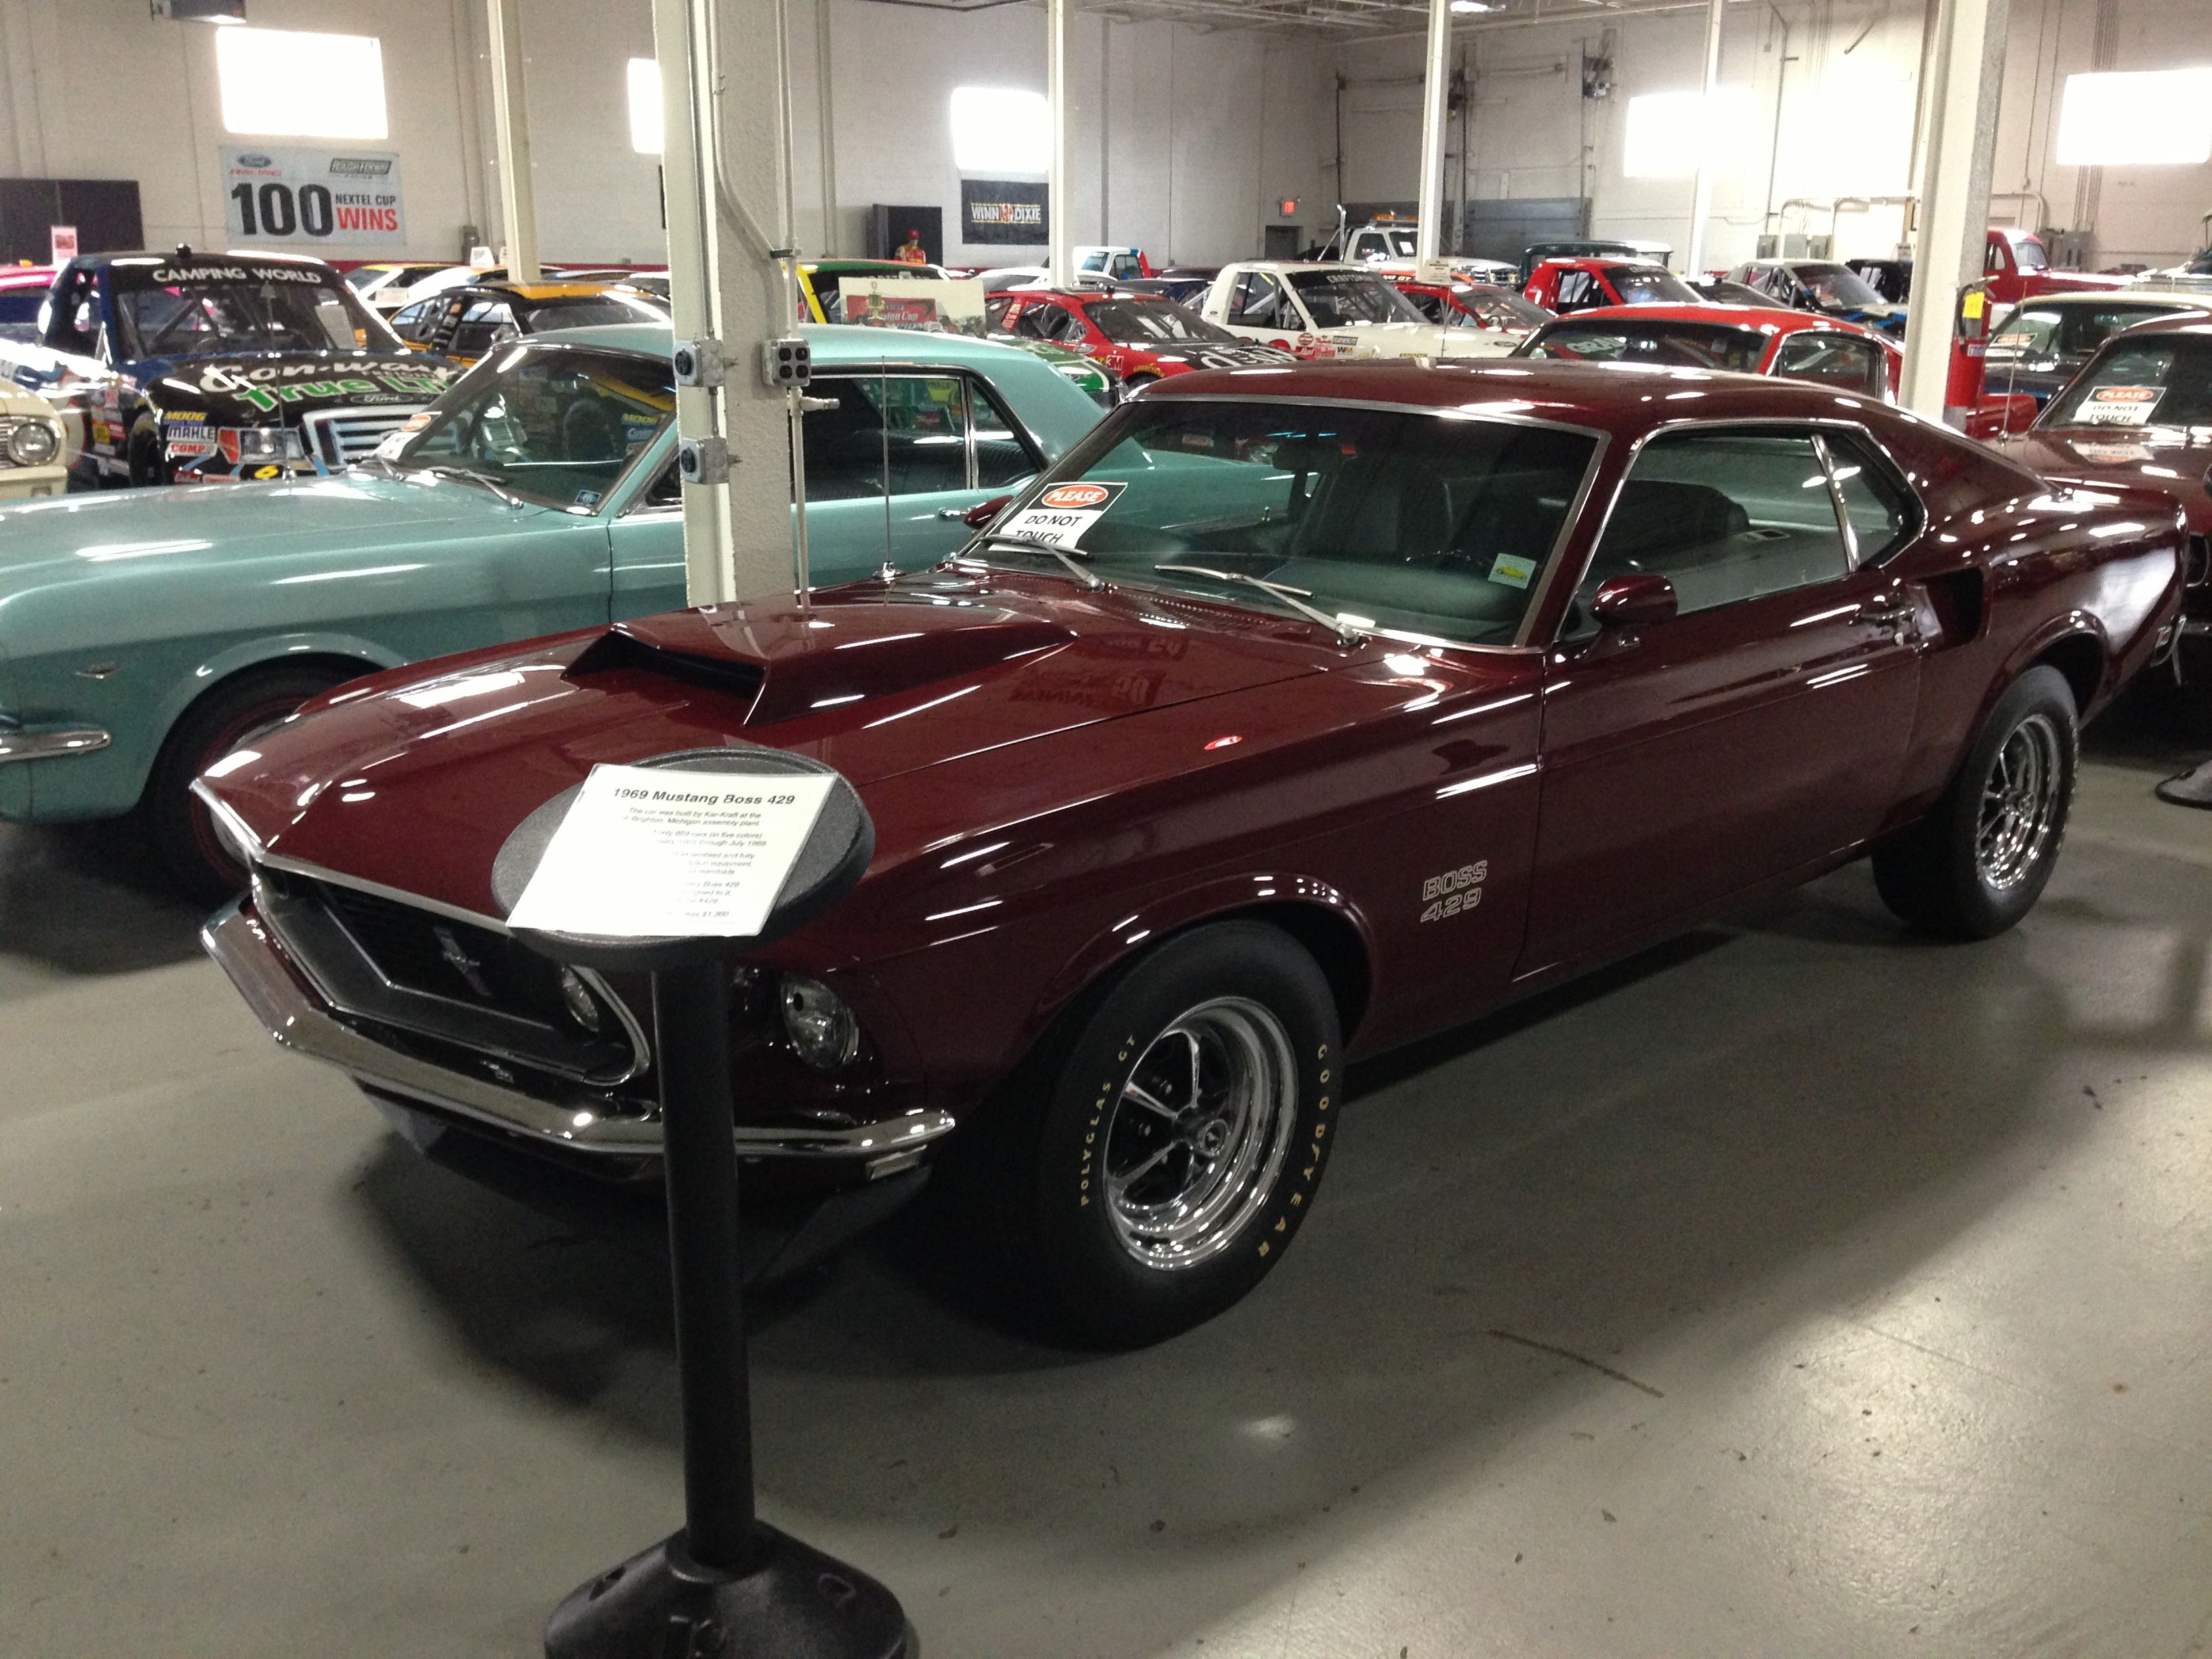 1969 ford mustang boss 429 jack roush 39 s private collection livonia mi american muscle. Black Bedroom Furniture Sets. Home Design Ideas